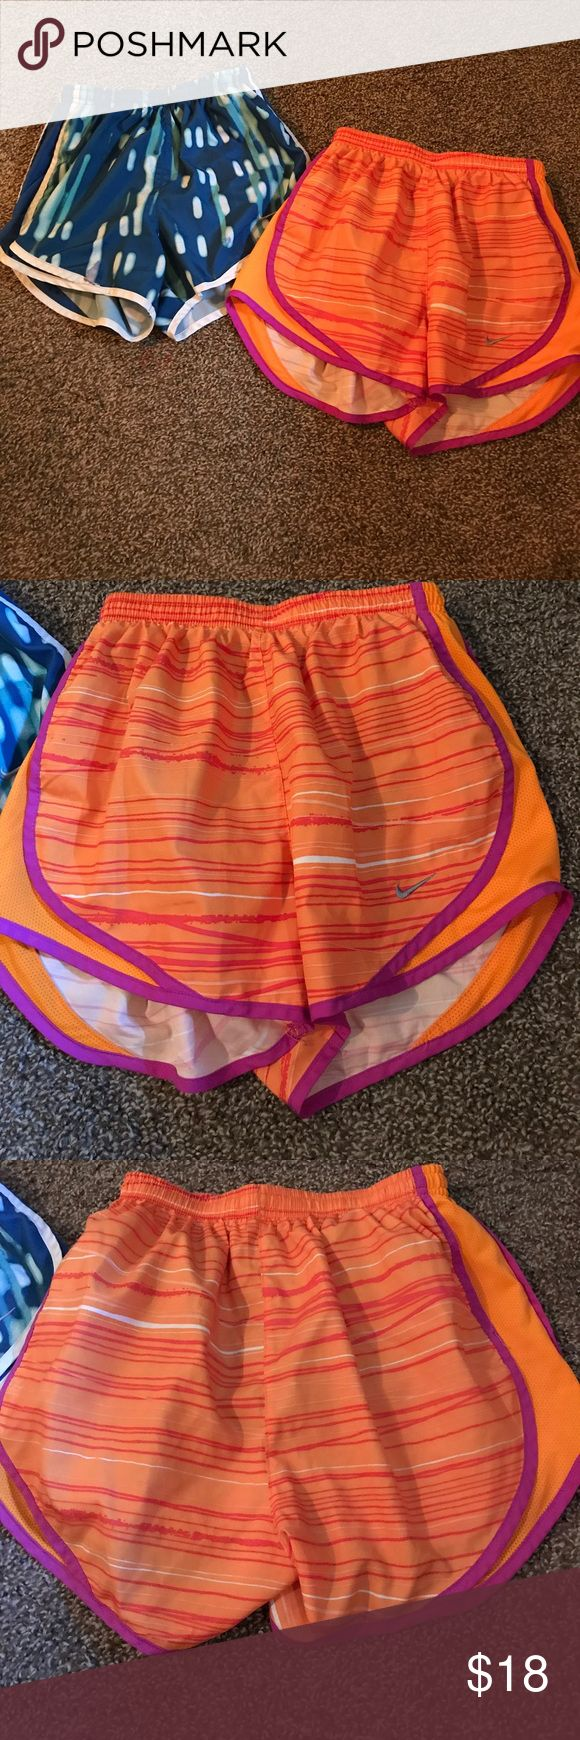 Nike XS Dri fit shorts extra small orange blue Nike XS shorts for sale! One is orange with purple accents with the panty liner. The other is blue, Aqua and white with the panty liner. The orange shorts are in excellent condition, and the blue shorts have a small stain on the front, and the tag is a bit worn. Make me an offer or bundle with my other items to save! Nike Shorts